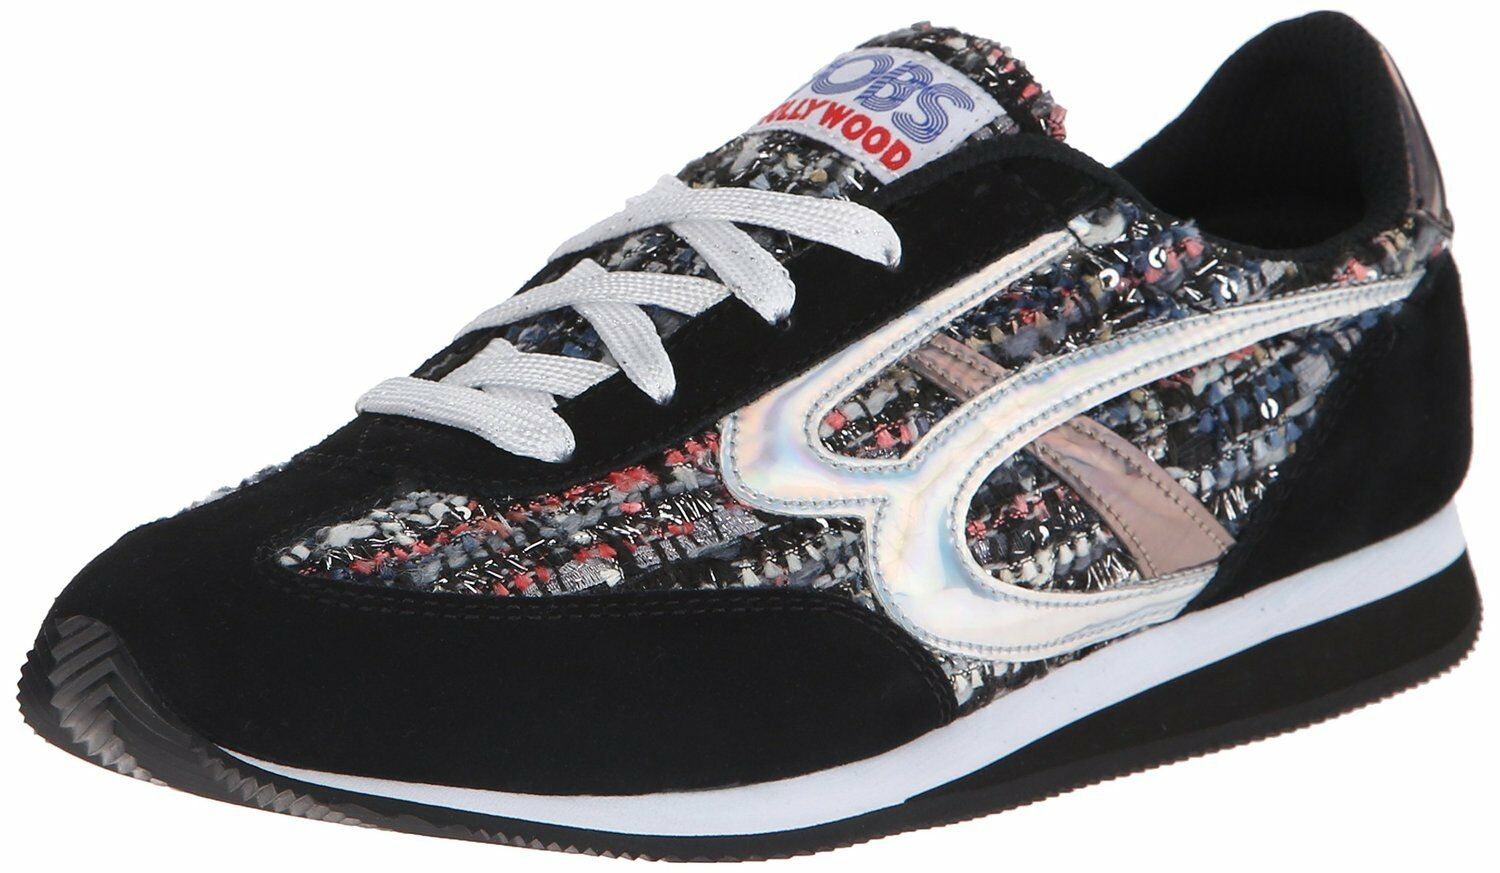 Sneaker Bobs Foam Retro Women's Sunset Fashion 80s Memory From Skechers Shoes rQdhCts